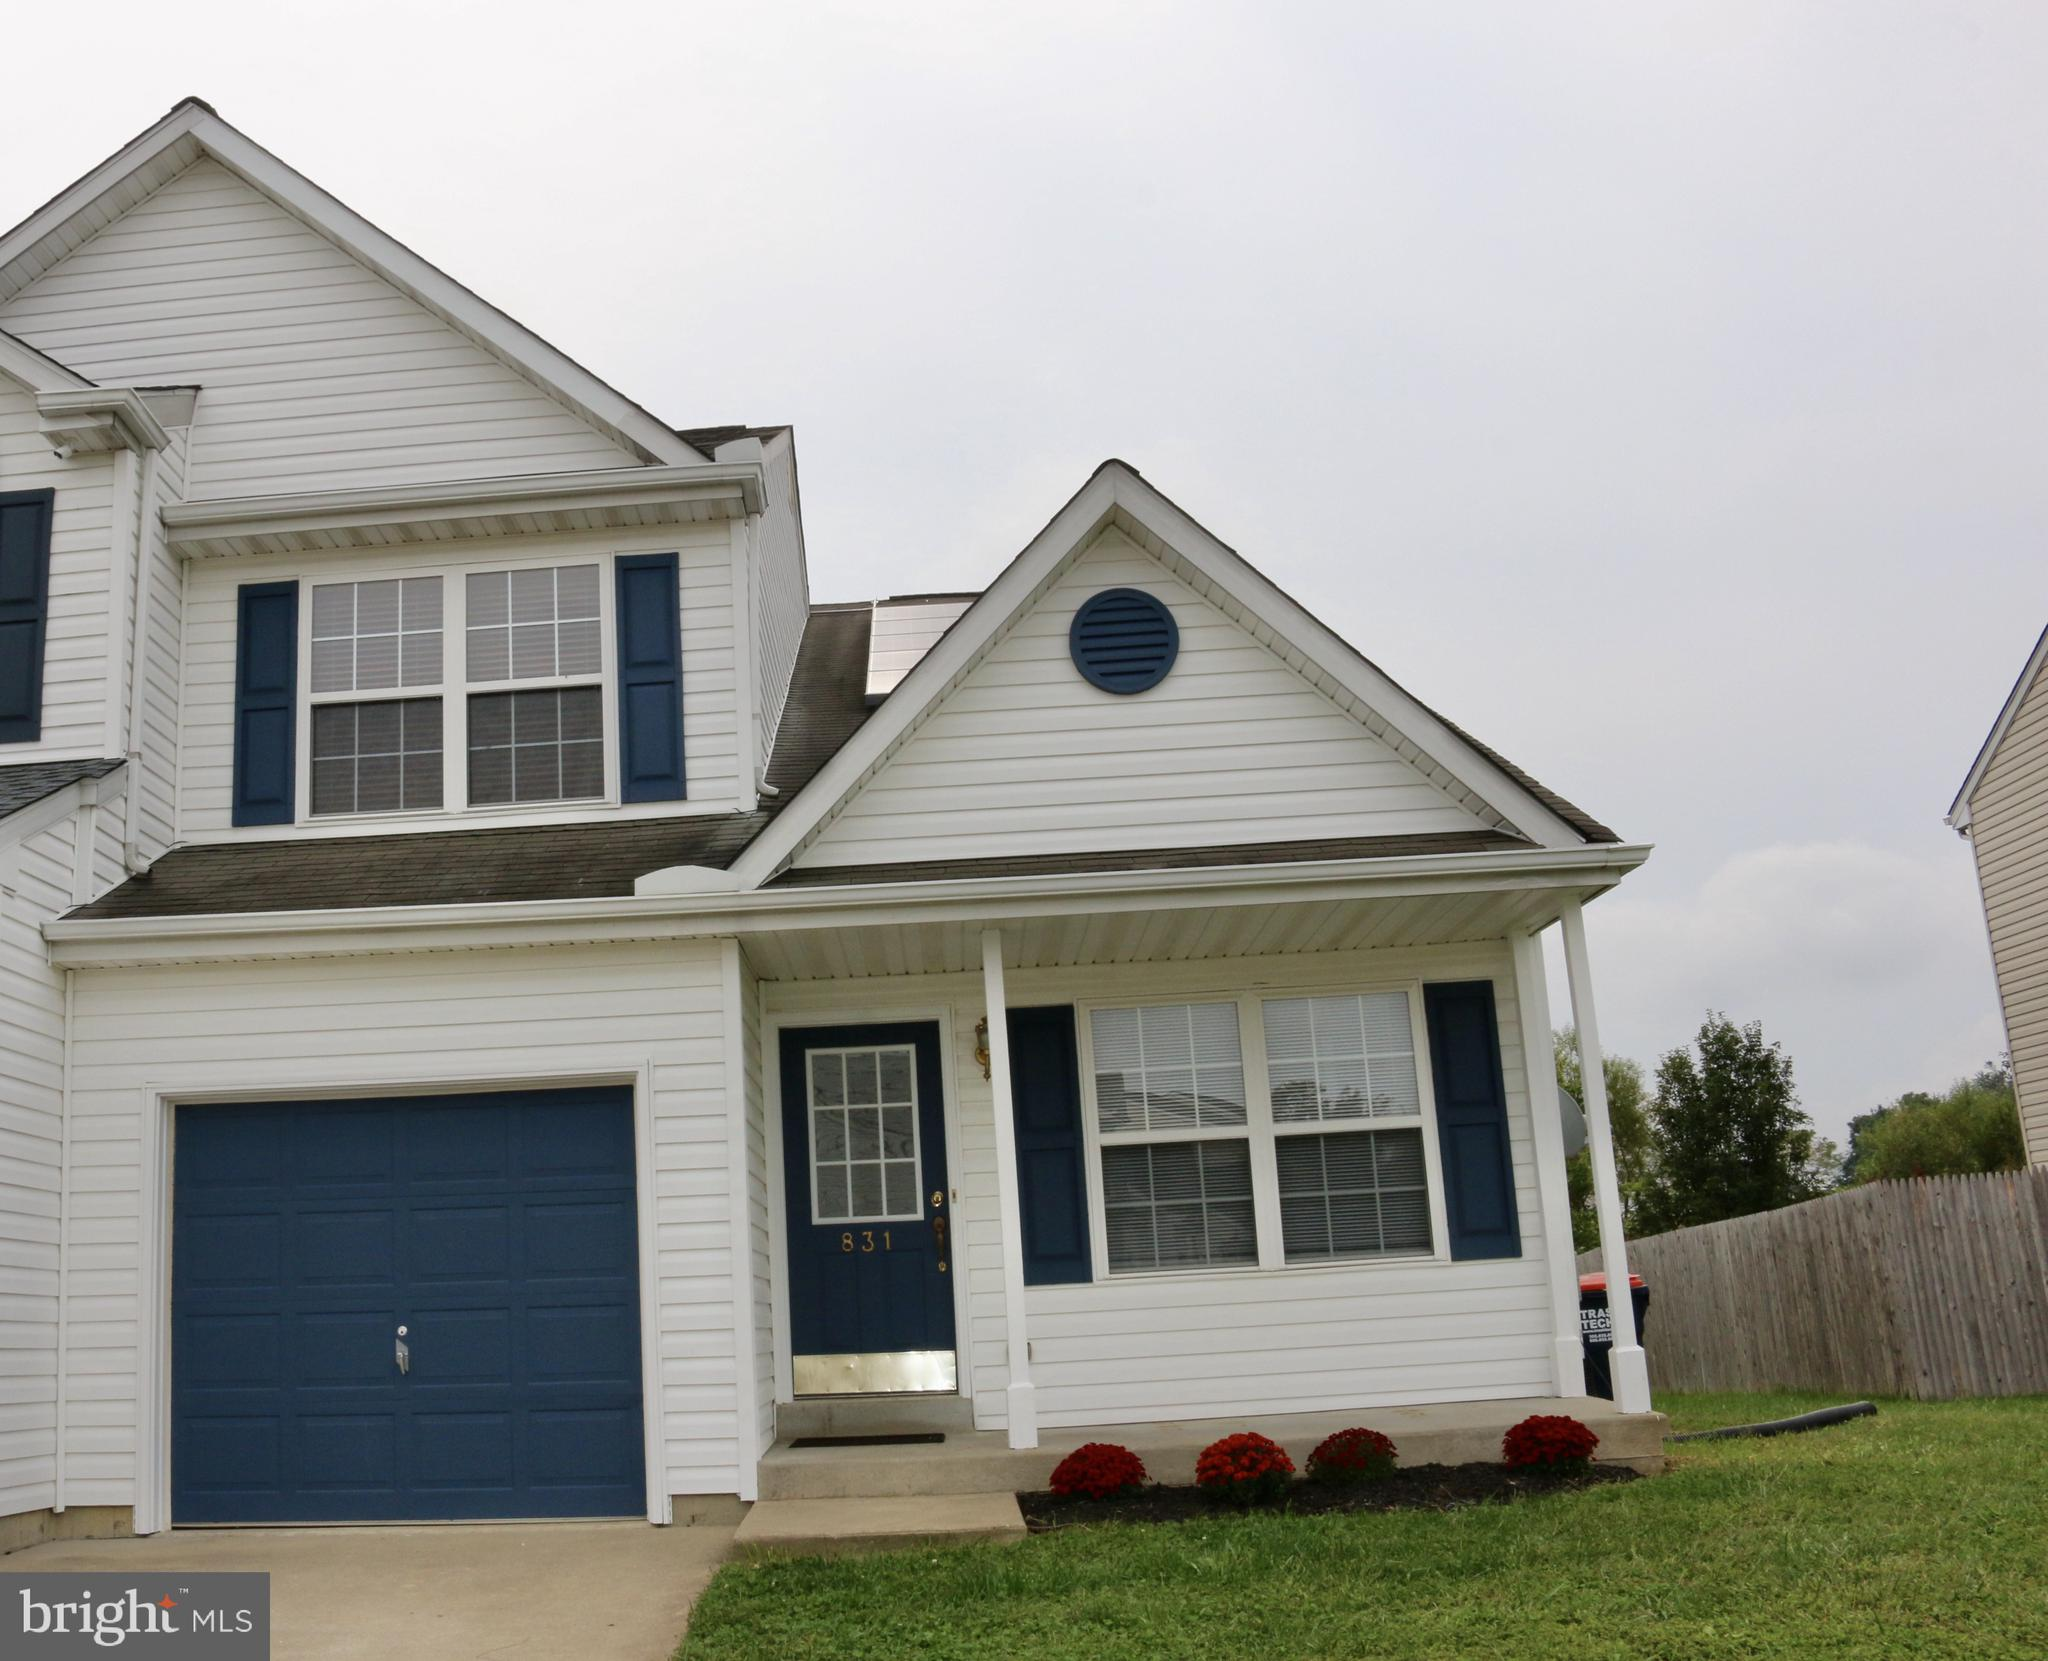 Visit this home virtually: http://www.vht.com/434107623/IDXS - Welcome home to 831 Gibbs in the high